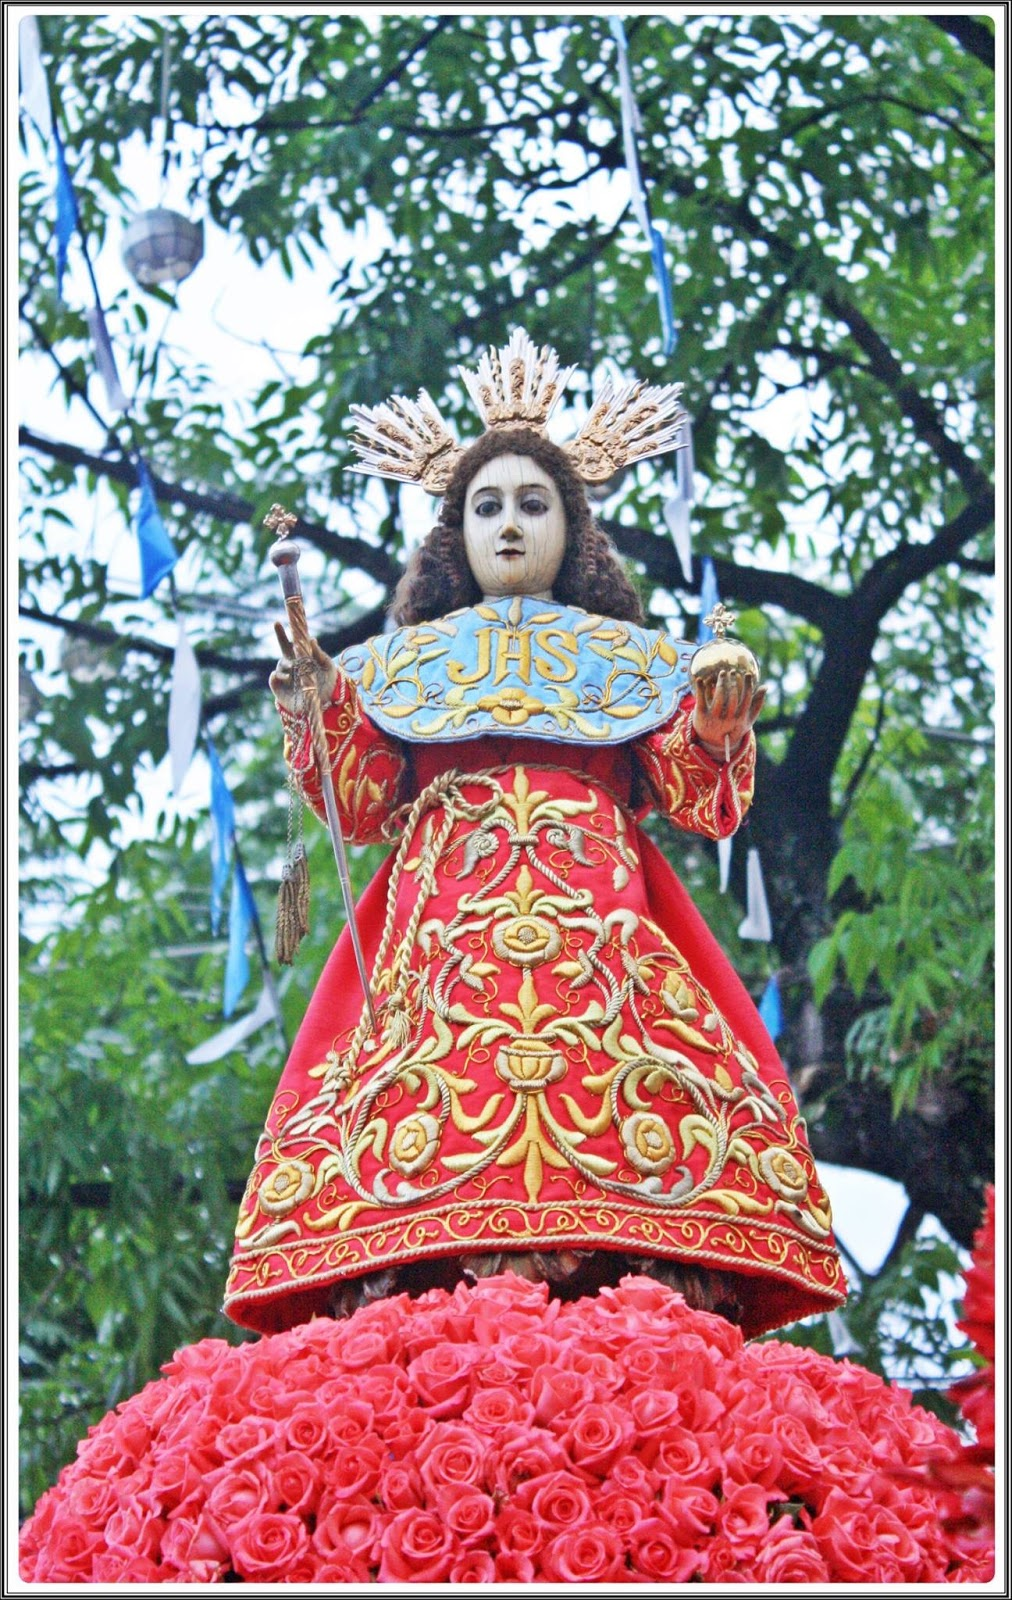 The Meek Santo Niño De Marikina